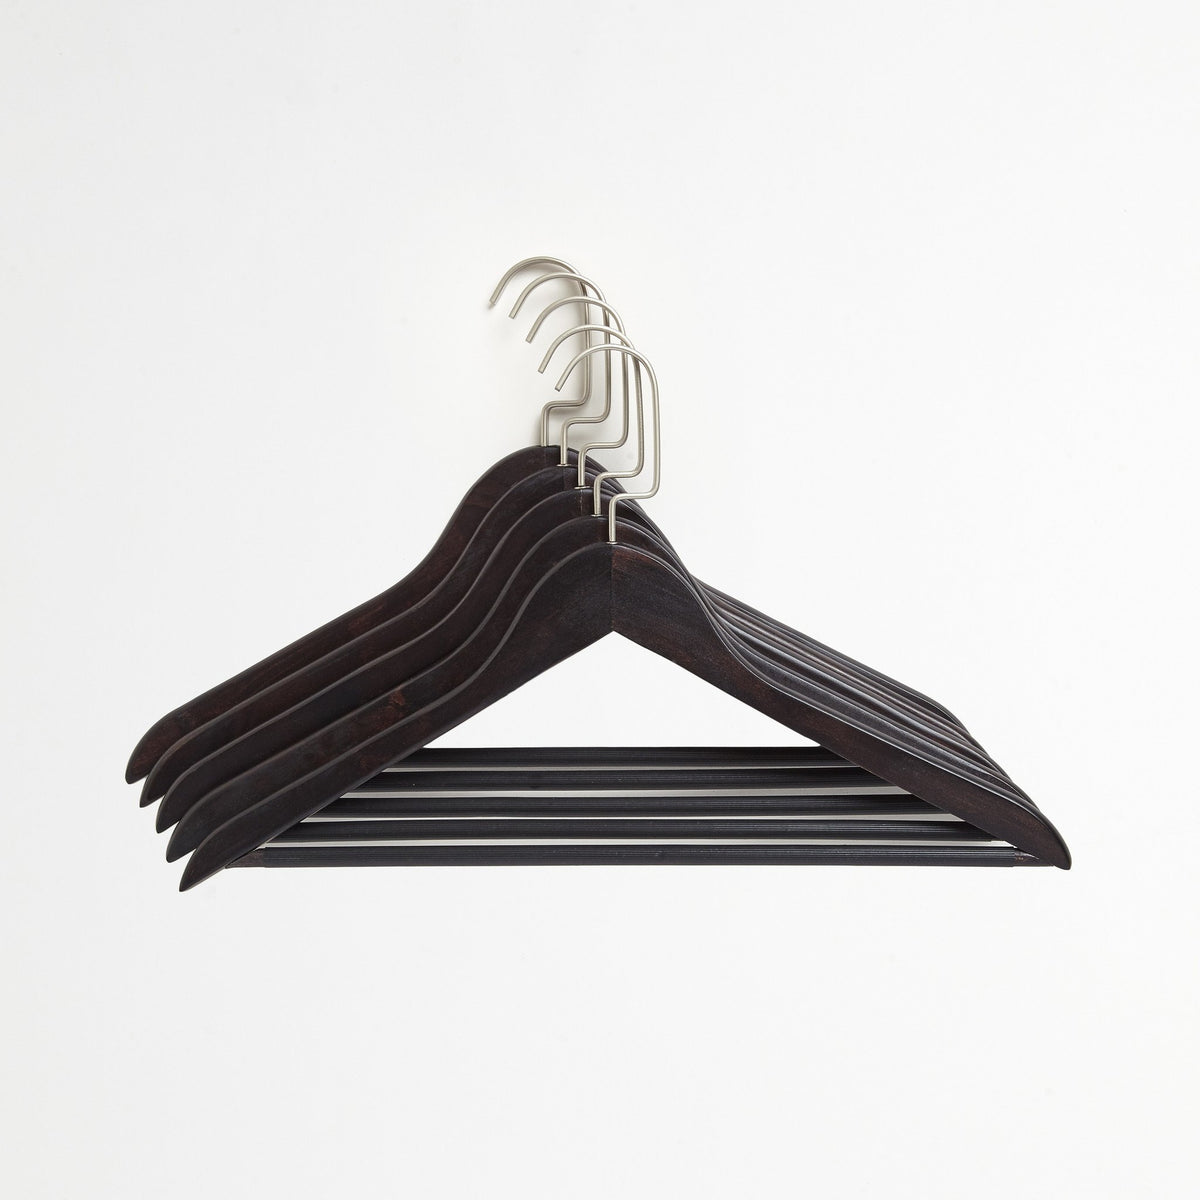 Chocolate Brown 5-Pack Suit Hanger Set